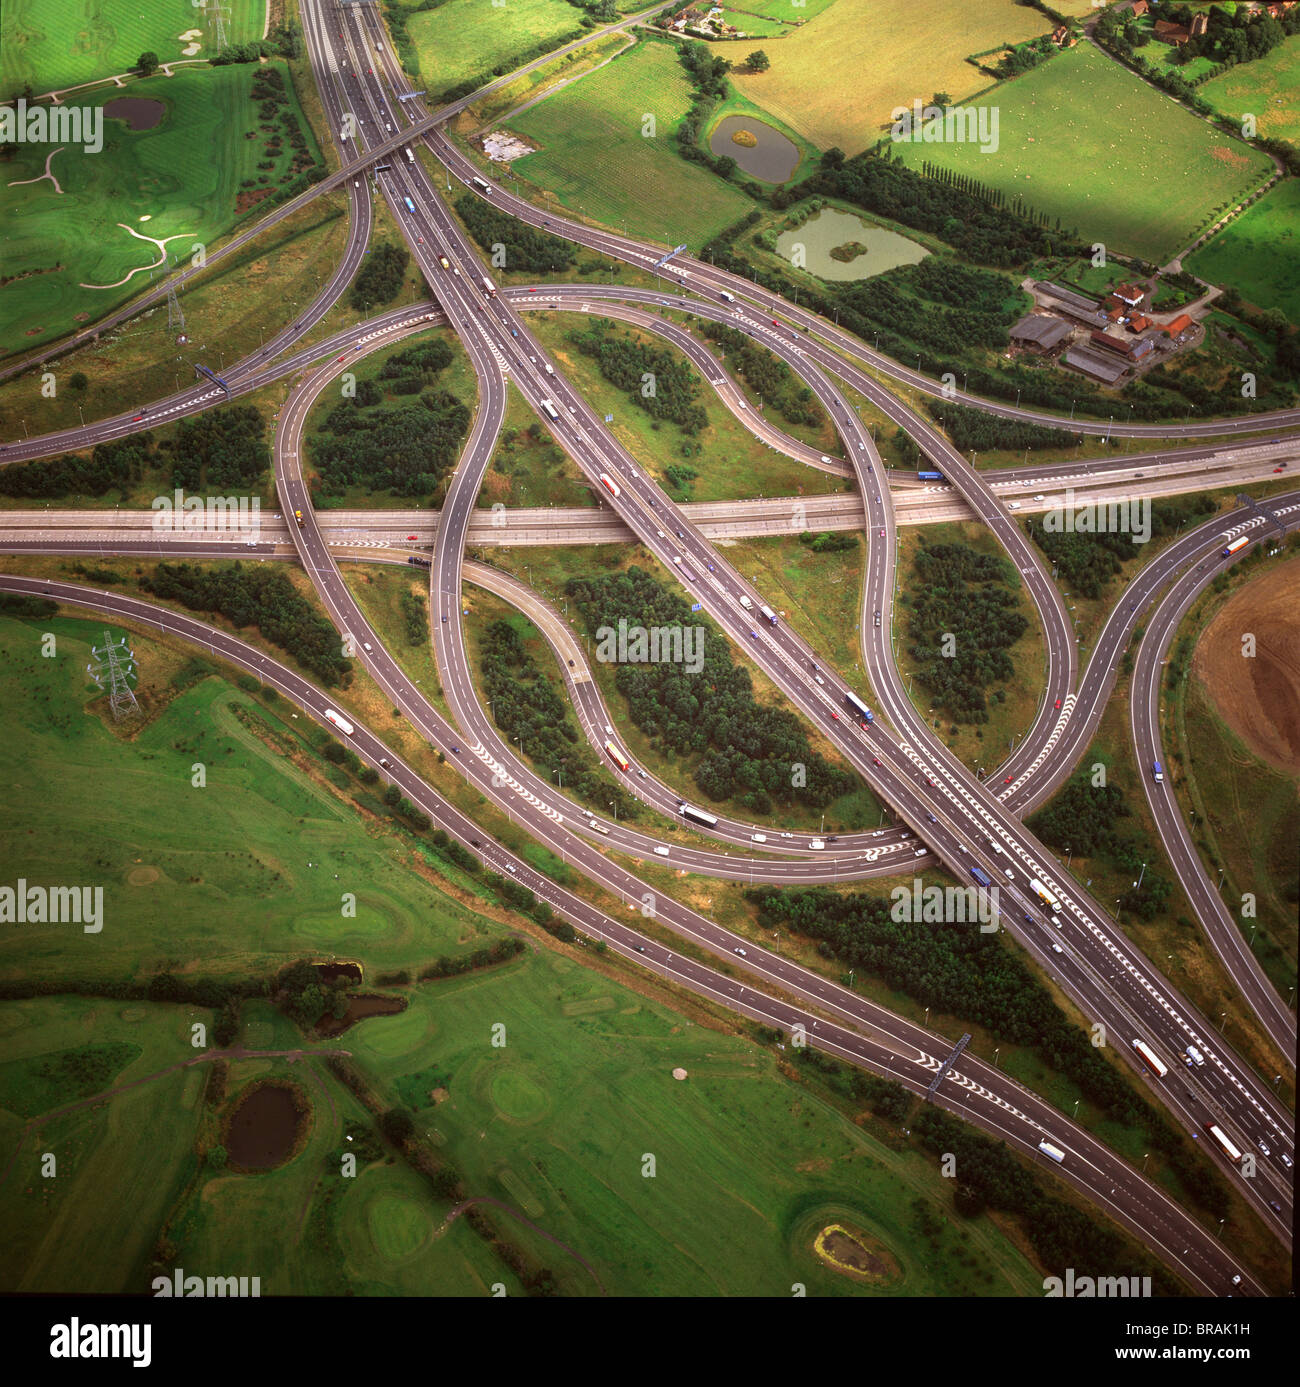 Aerial image of M25 and M11 Motorway Junction, Essex, England, United Kingdom, Europe - Stock Image